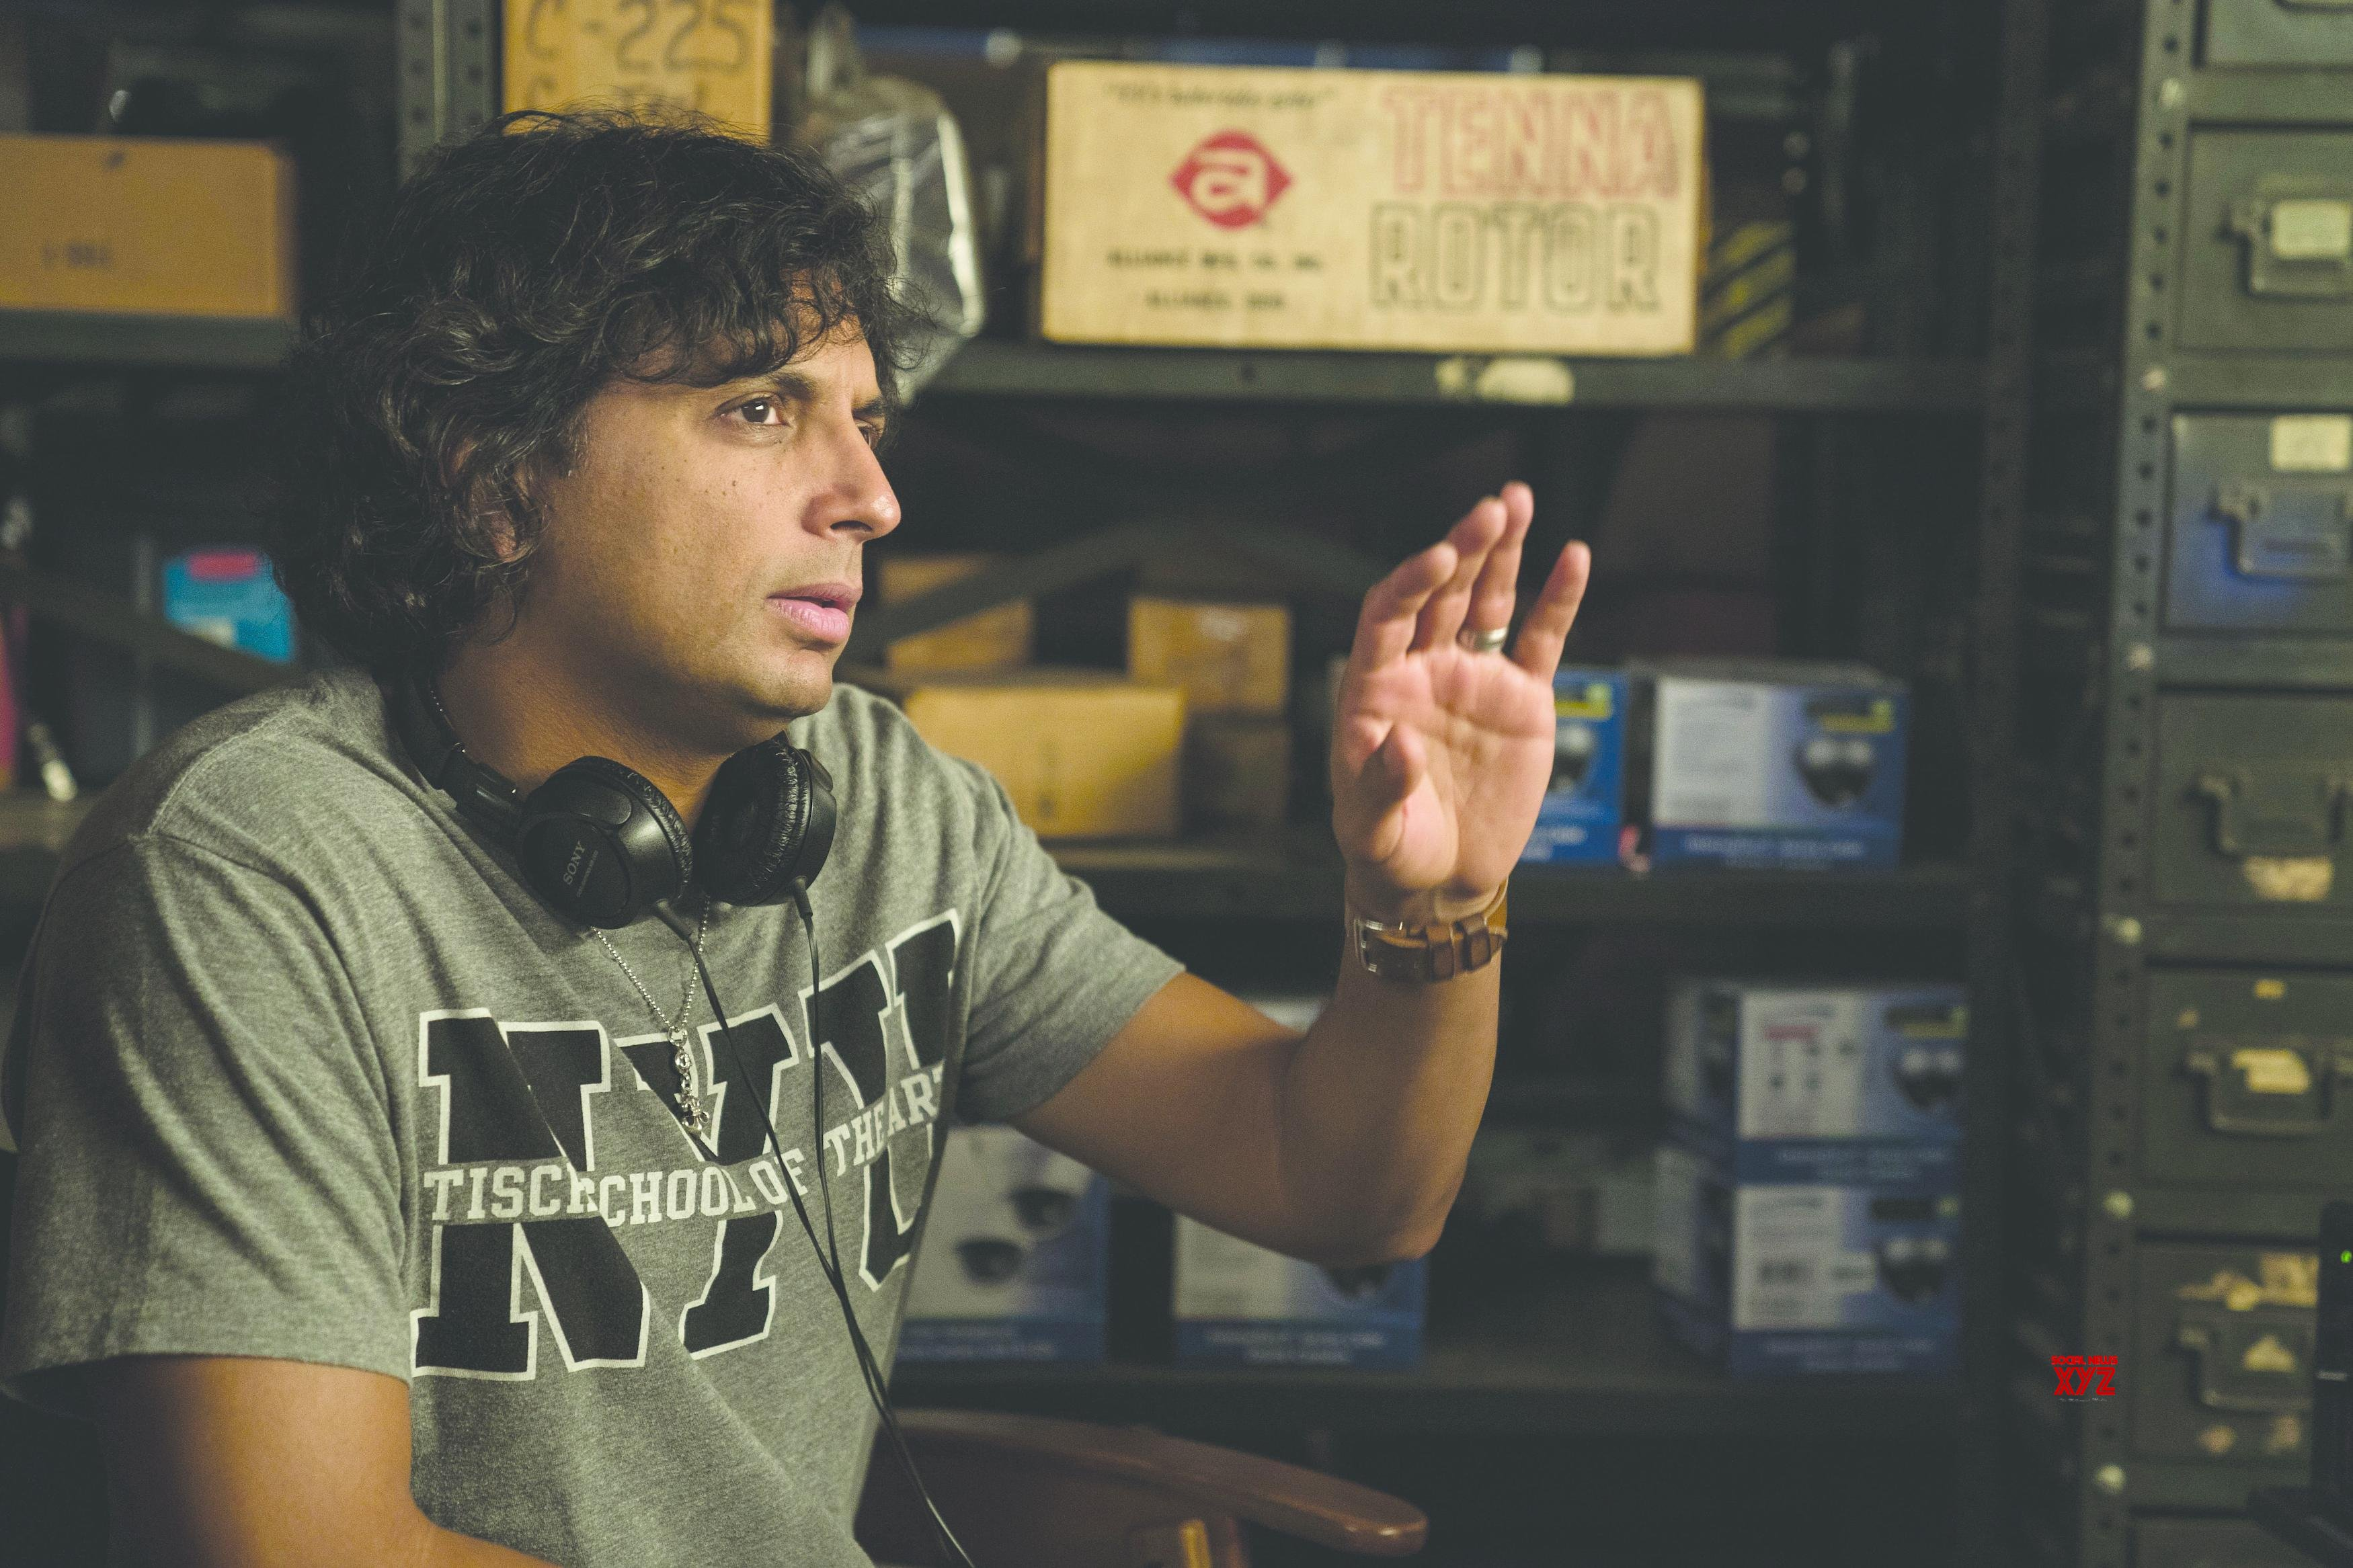 We're seeing a strong dose of tribalism globally: Indian American filmmaker M. Night Shyamalan